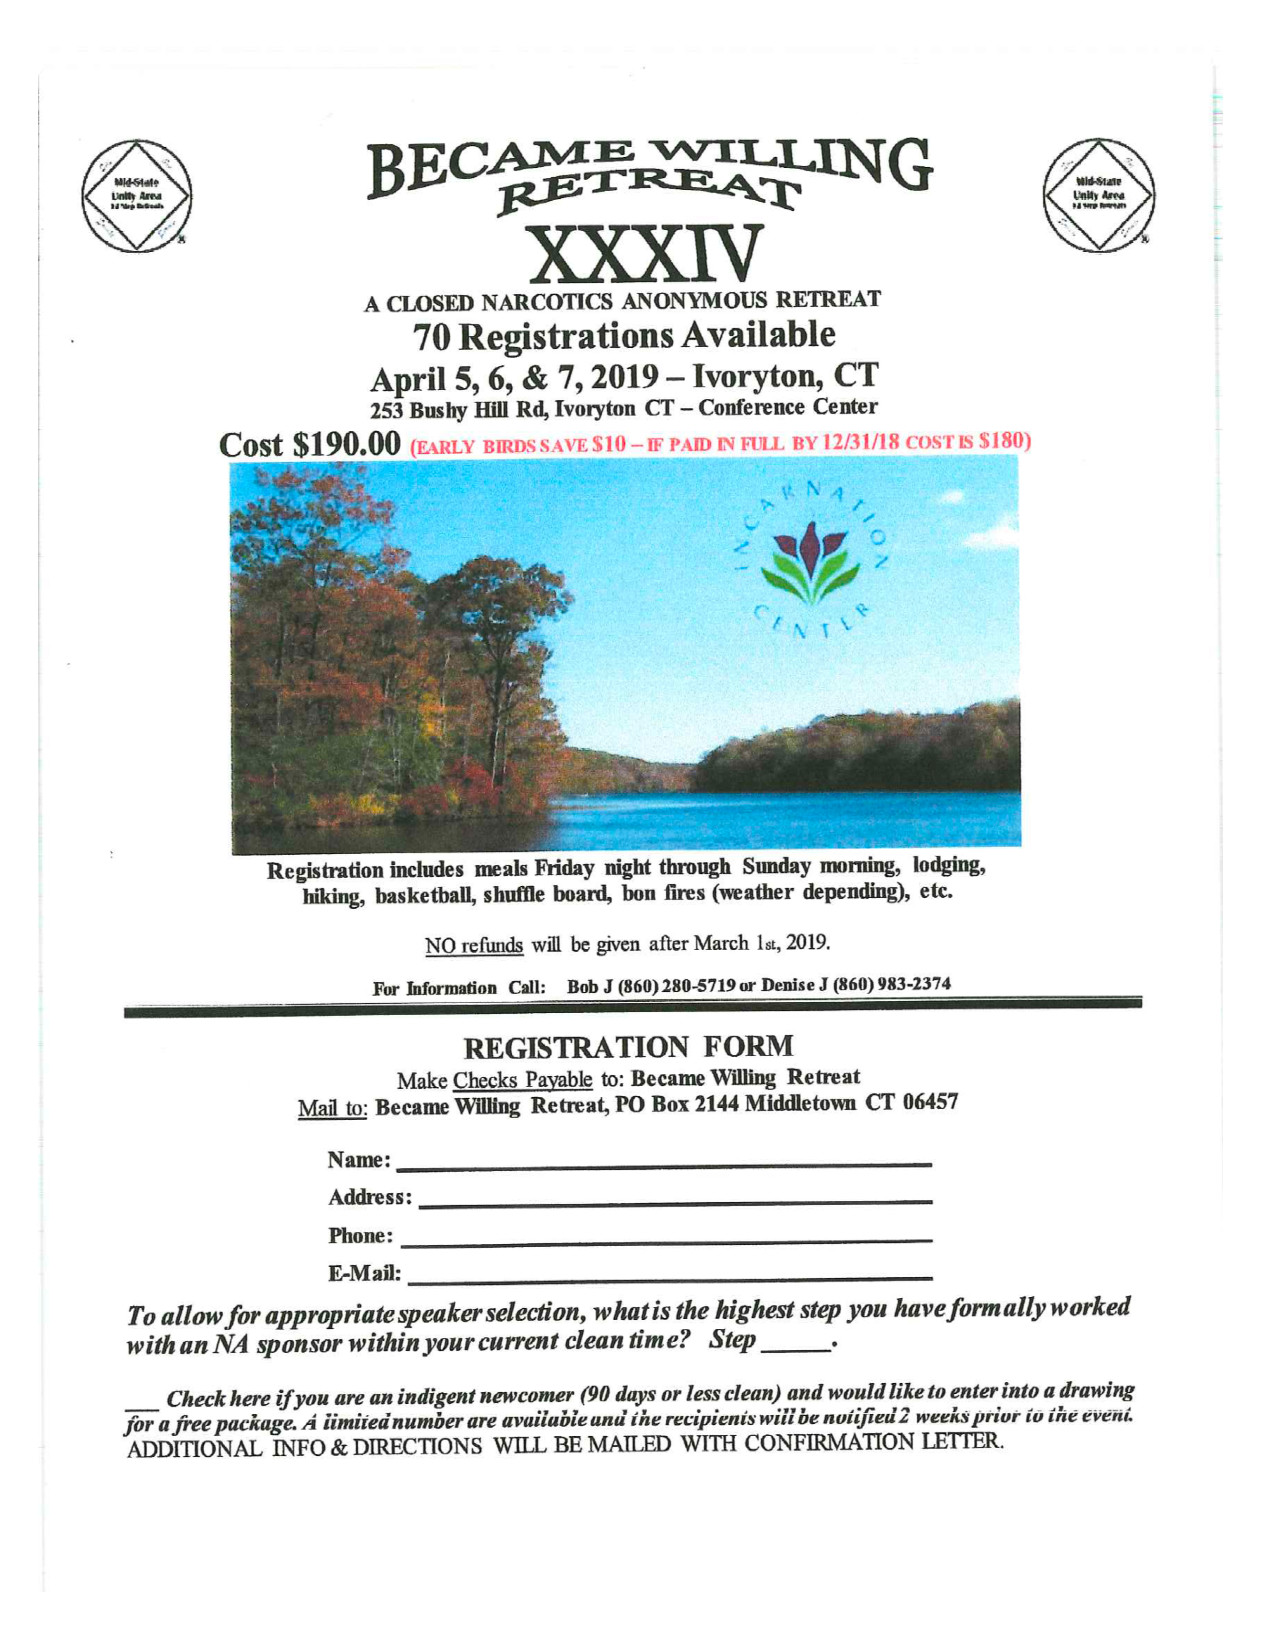 Became Willing Retreat XXXIV - Connecticut Region of